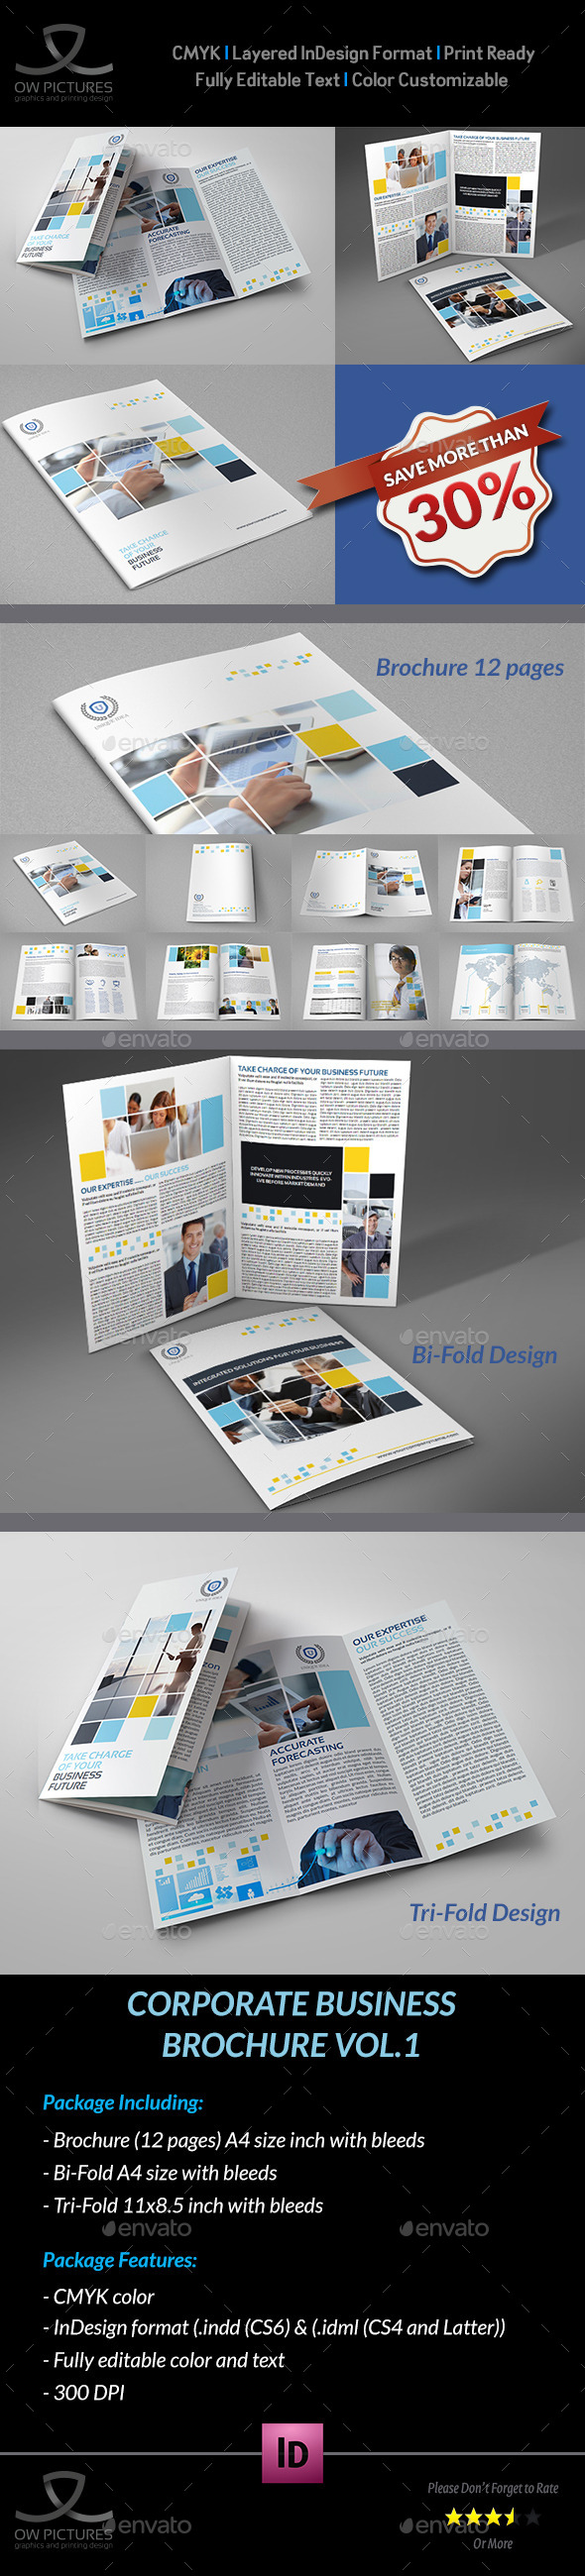 Company brochure bundle vol 1 graphicriver for Tri fold brochure template indesign cs6